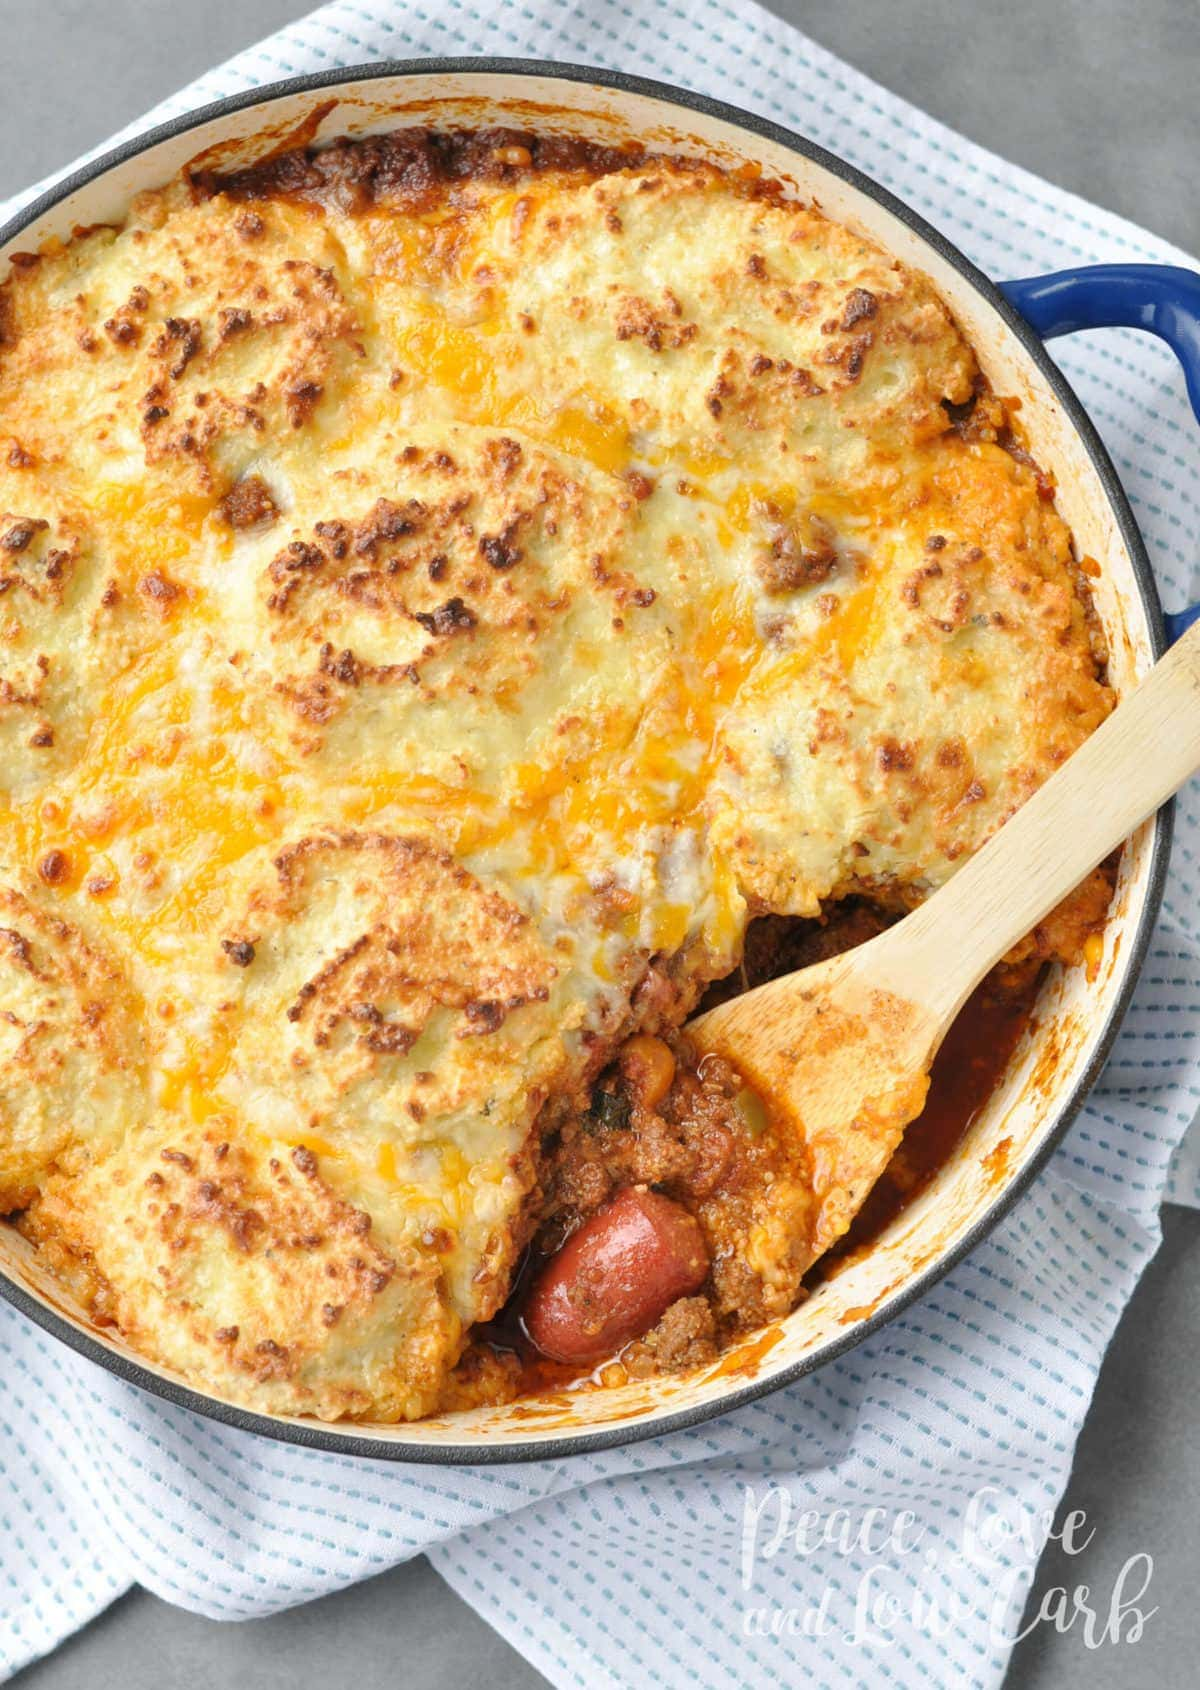 Keto Chili Dog Pot Pie Casserole | Peace Love and Low Carb